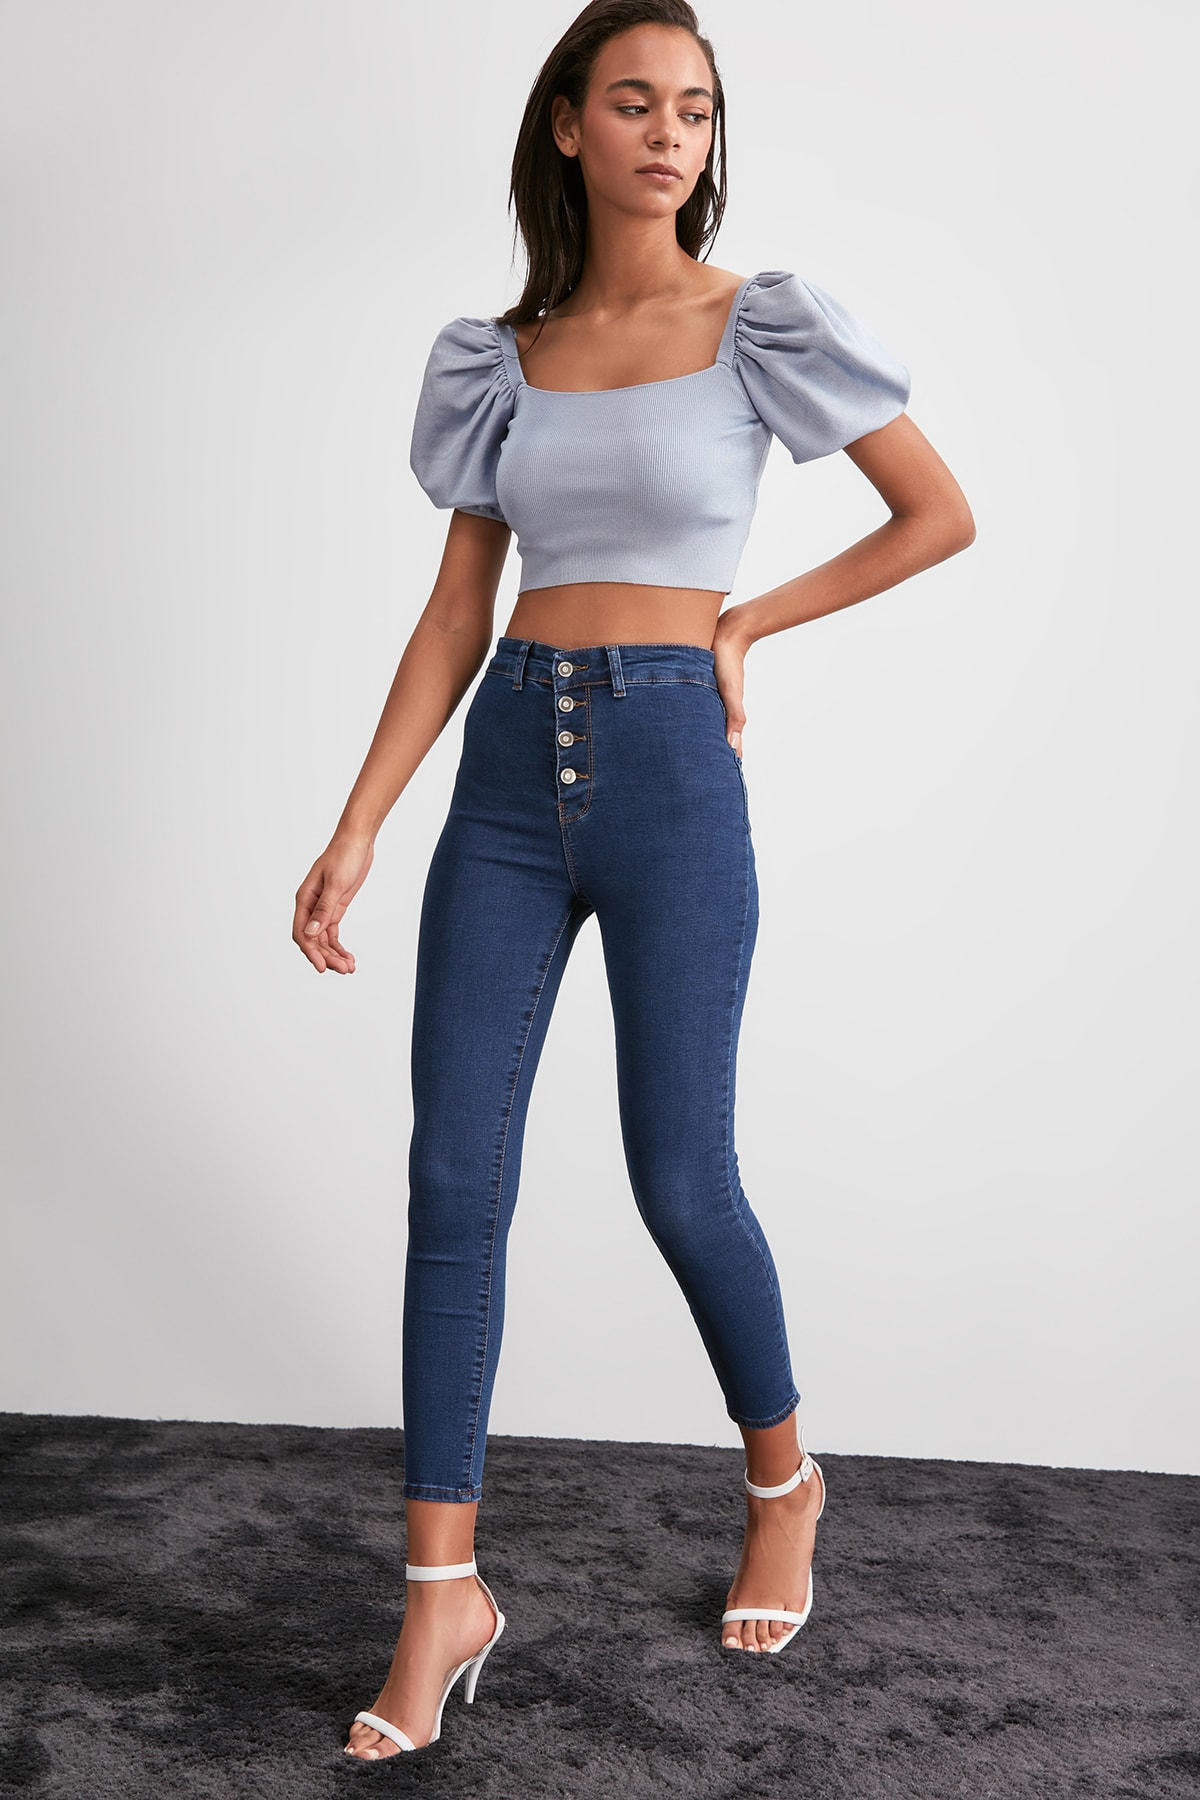 Trendyol Front Button High Waist Jegging Jeans TWOAW20JE0444